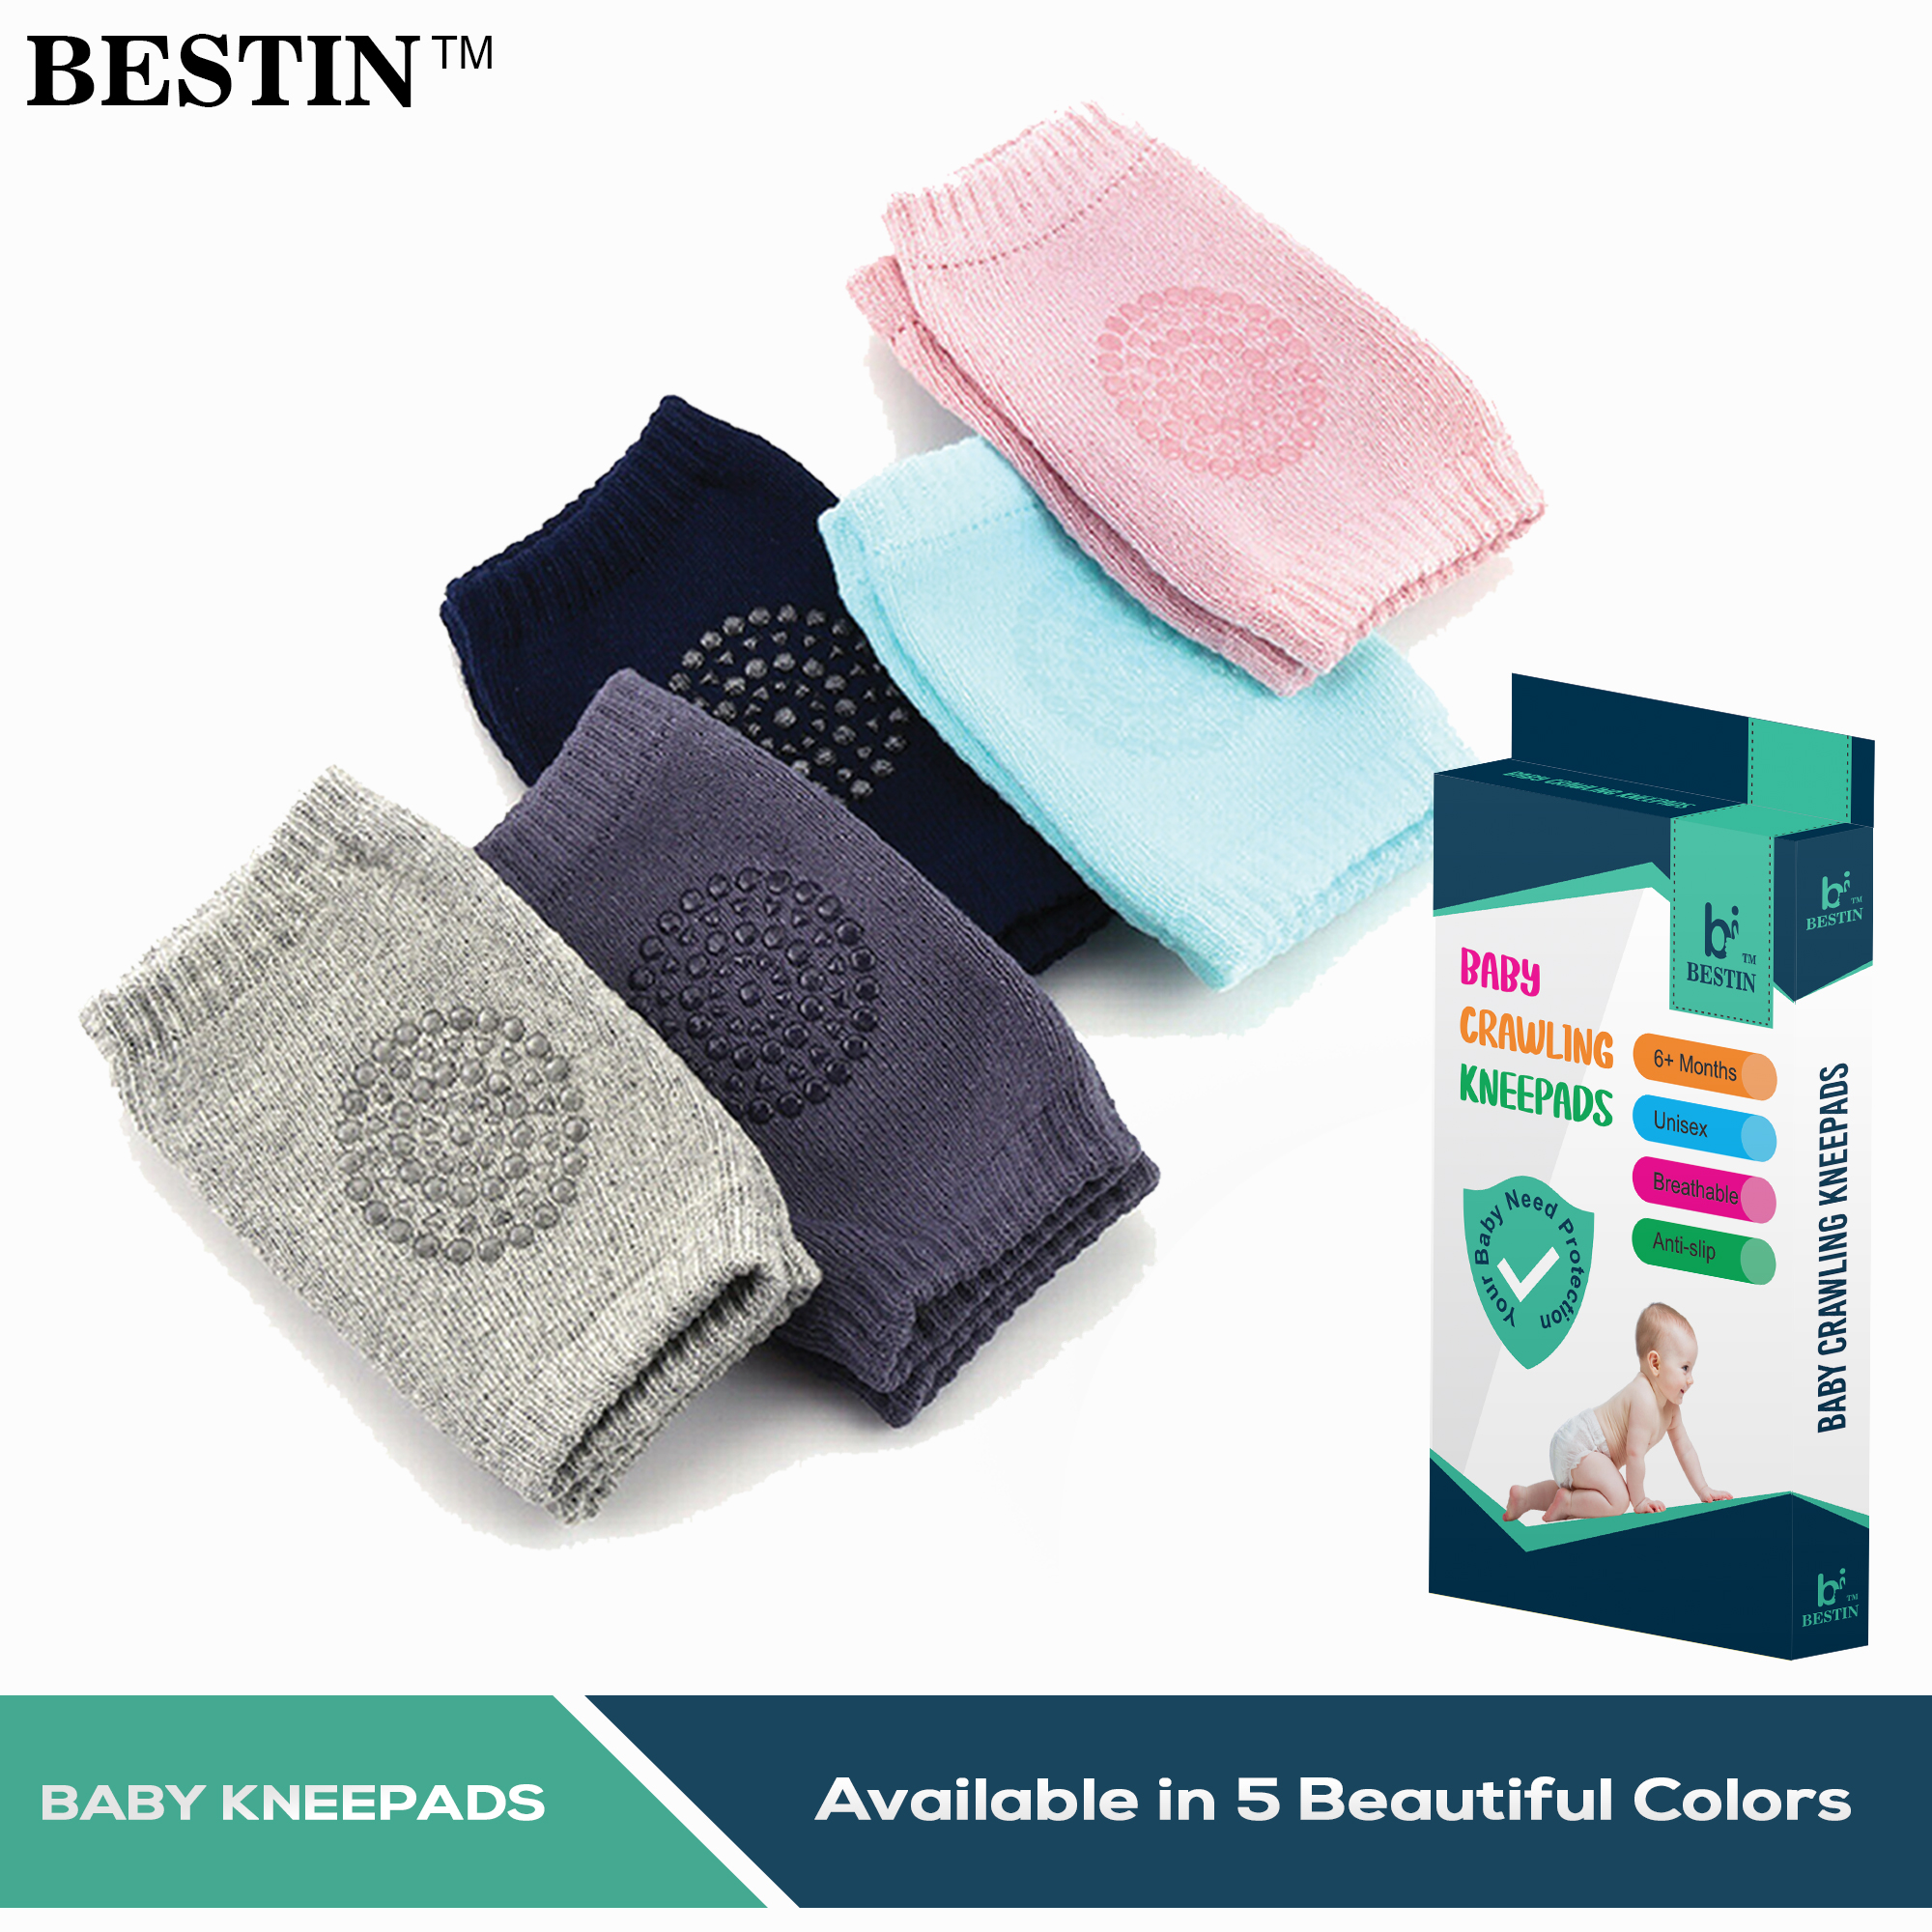 Knee Pads for baby / Baby Knee Protector / Baby KneePads / Baby Crawling Kneepad / Baby Knee Protection.